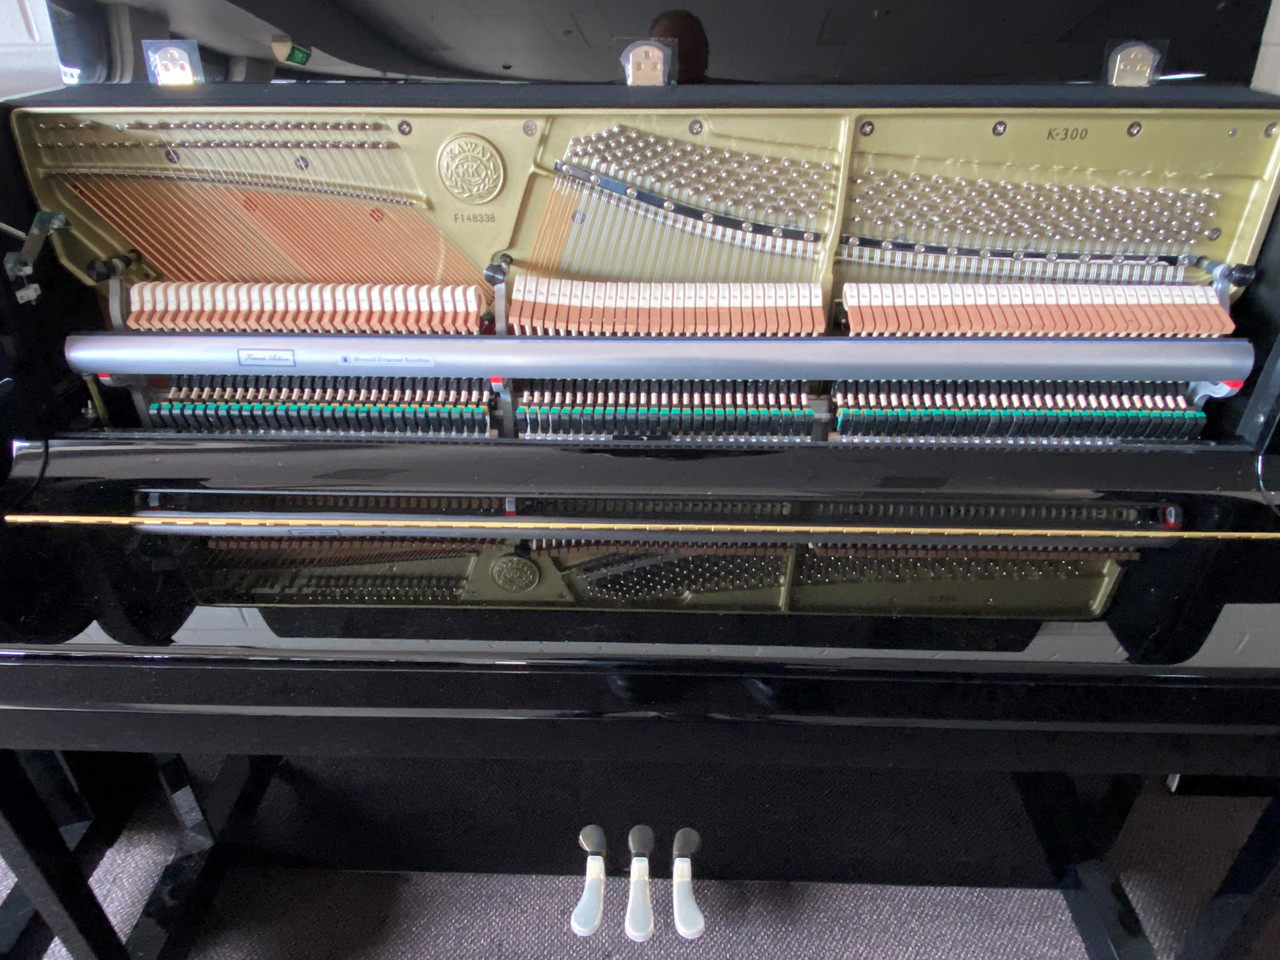 Excellent example of Kawai's famous craftsmenship. Comes with a 12 Year Kawai Piano Warranty.